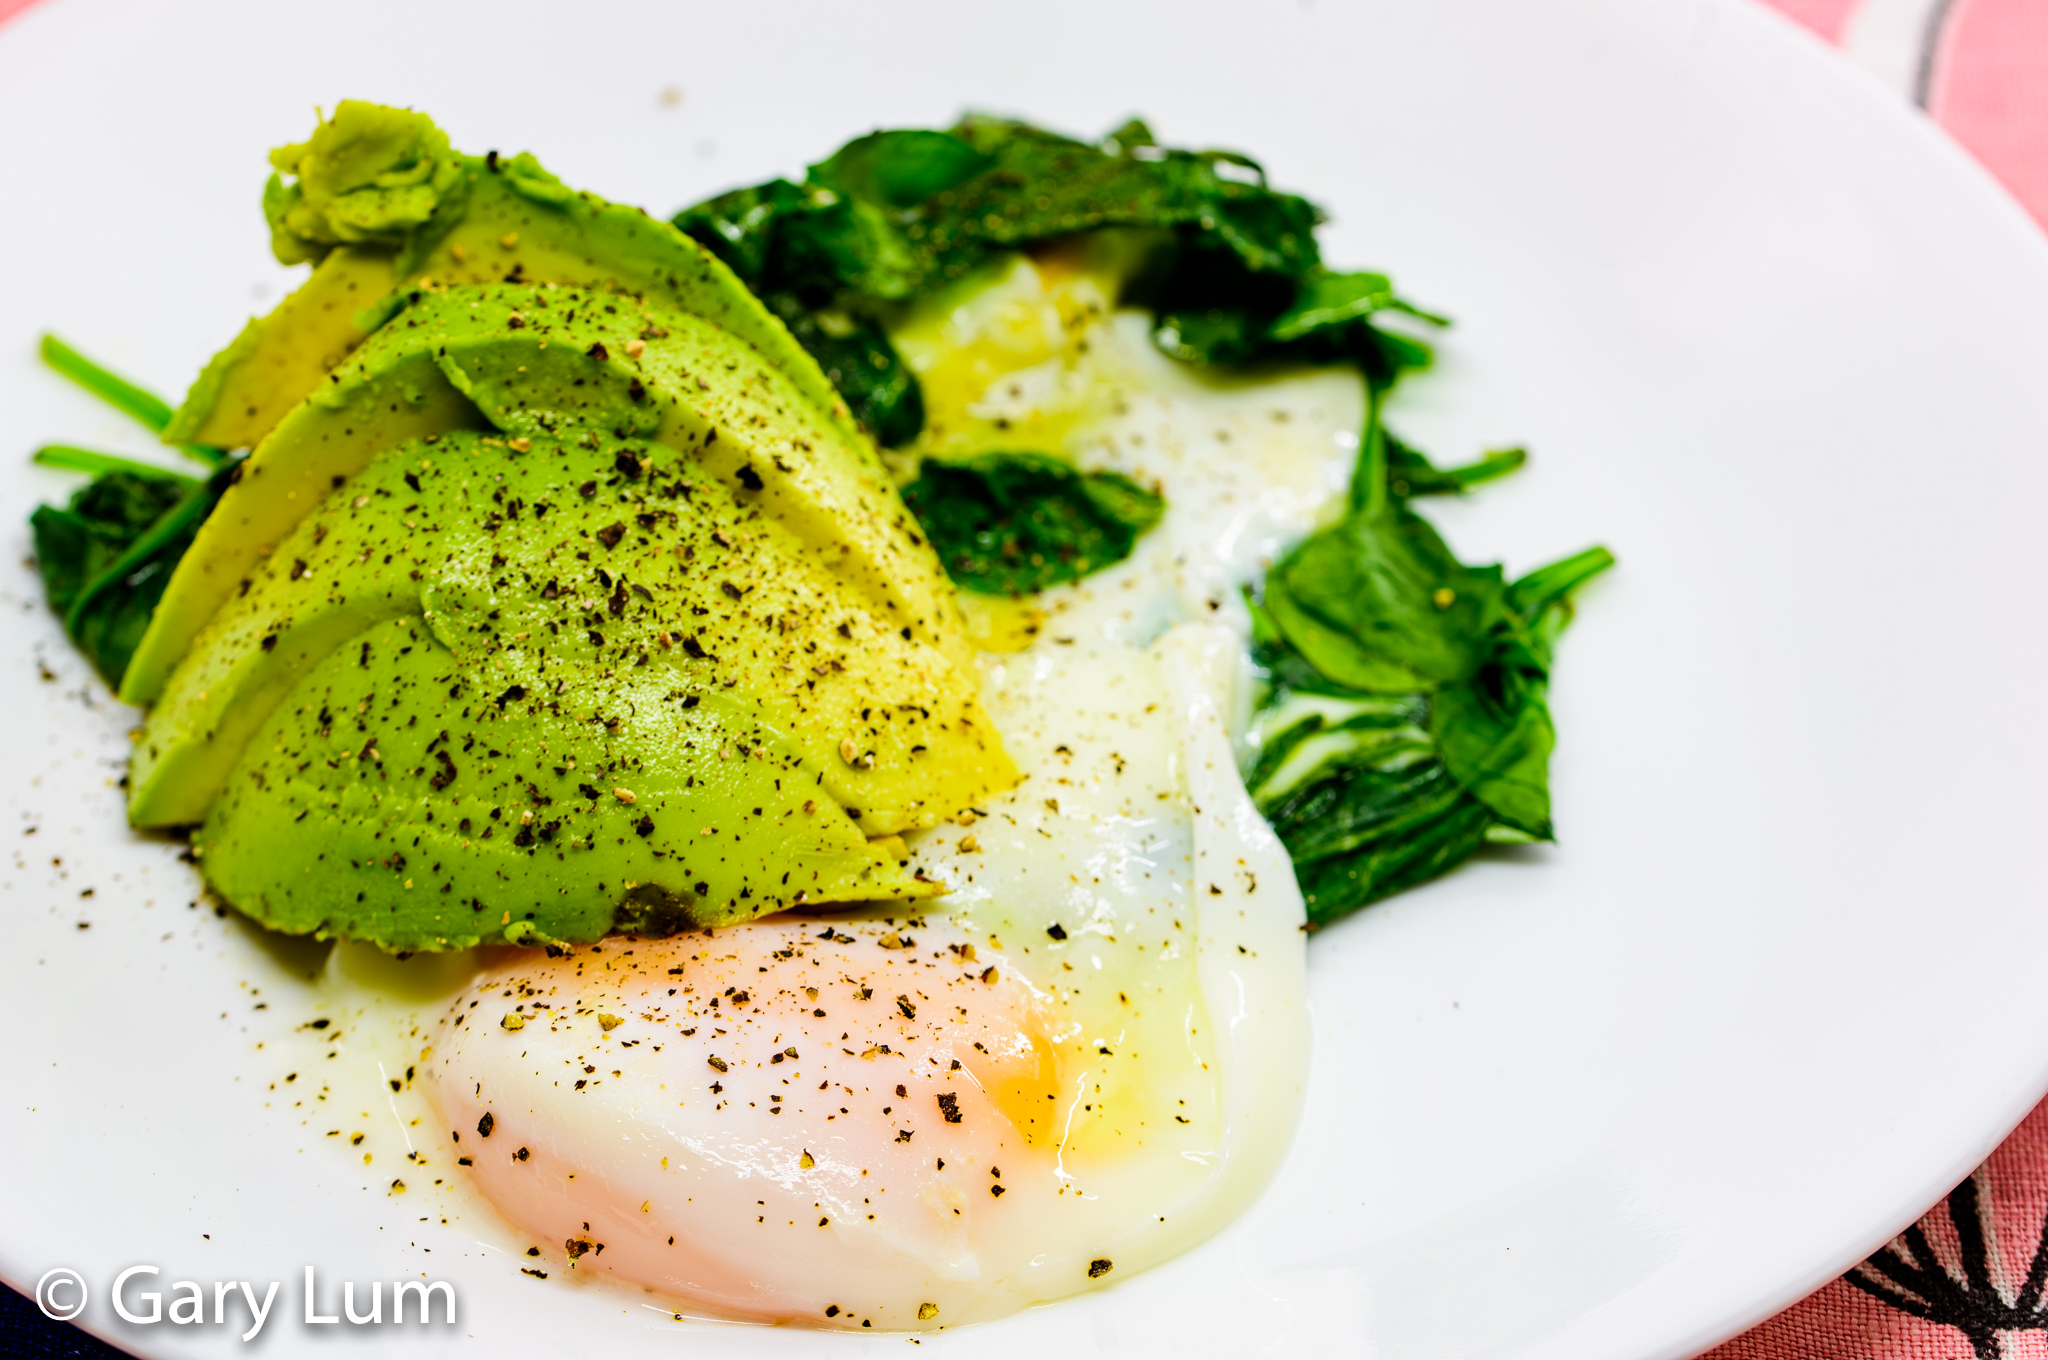 Steamed egg with melted cheese and wilted spinach and an avocado cheek. Gary Lum.